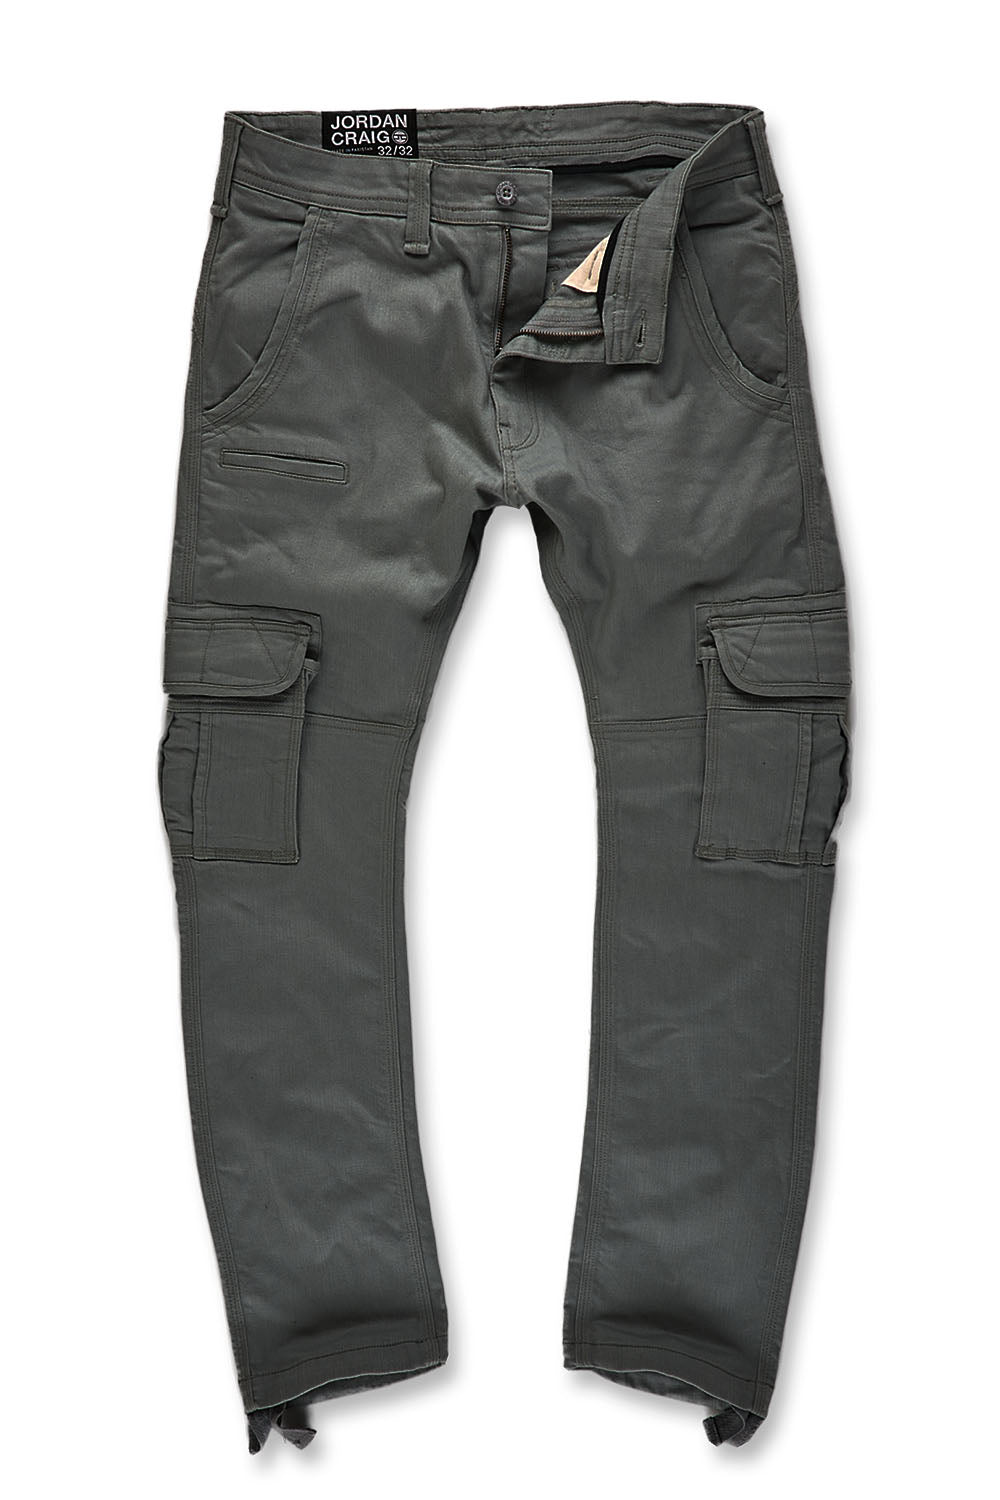 Xavier - Casual Cargo Pants 2.0 (Charcoal)